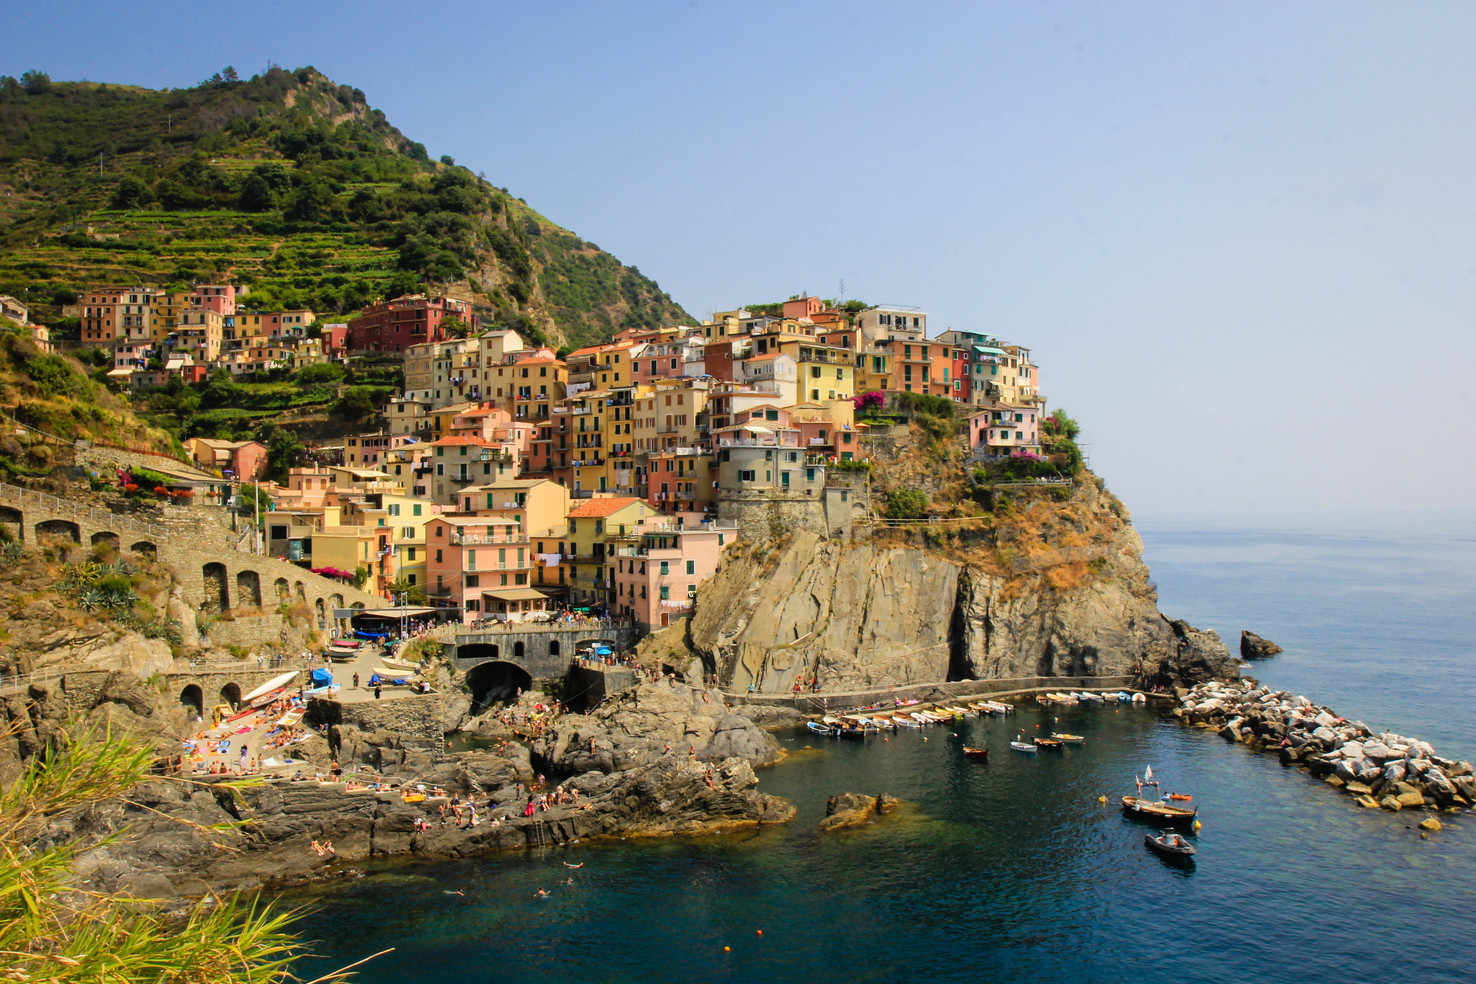 La Spezia Getaway Italy Vacation Package Getaway   Italy Vacation Package